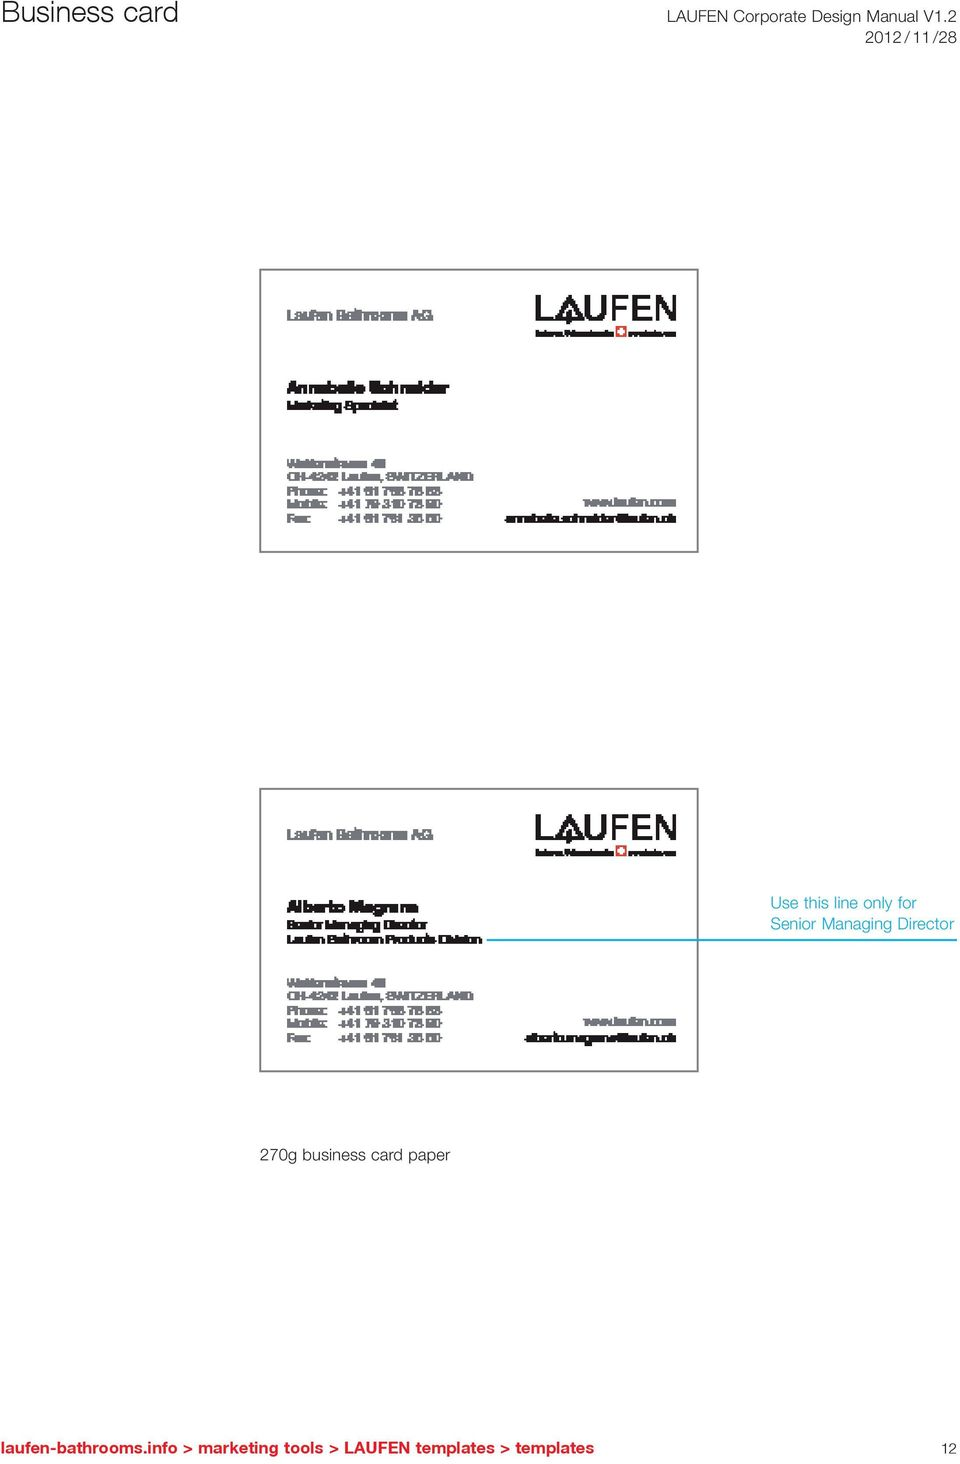 card paper laufen-bathrooms.